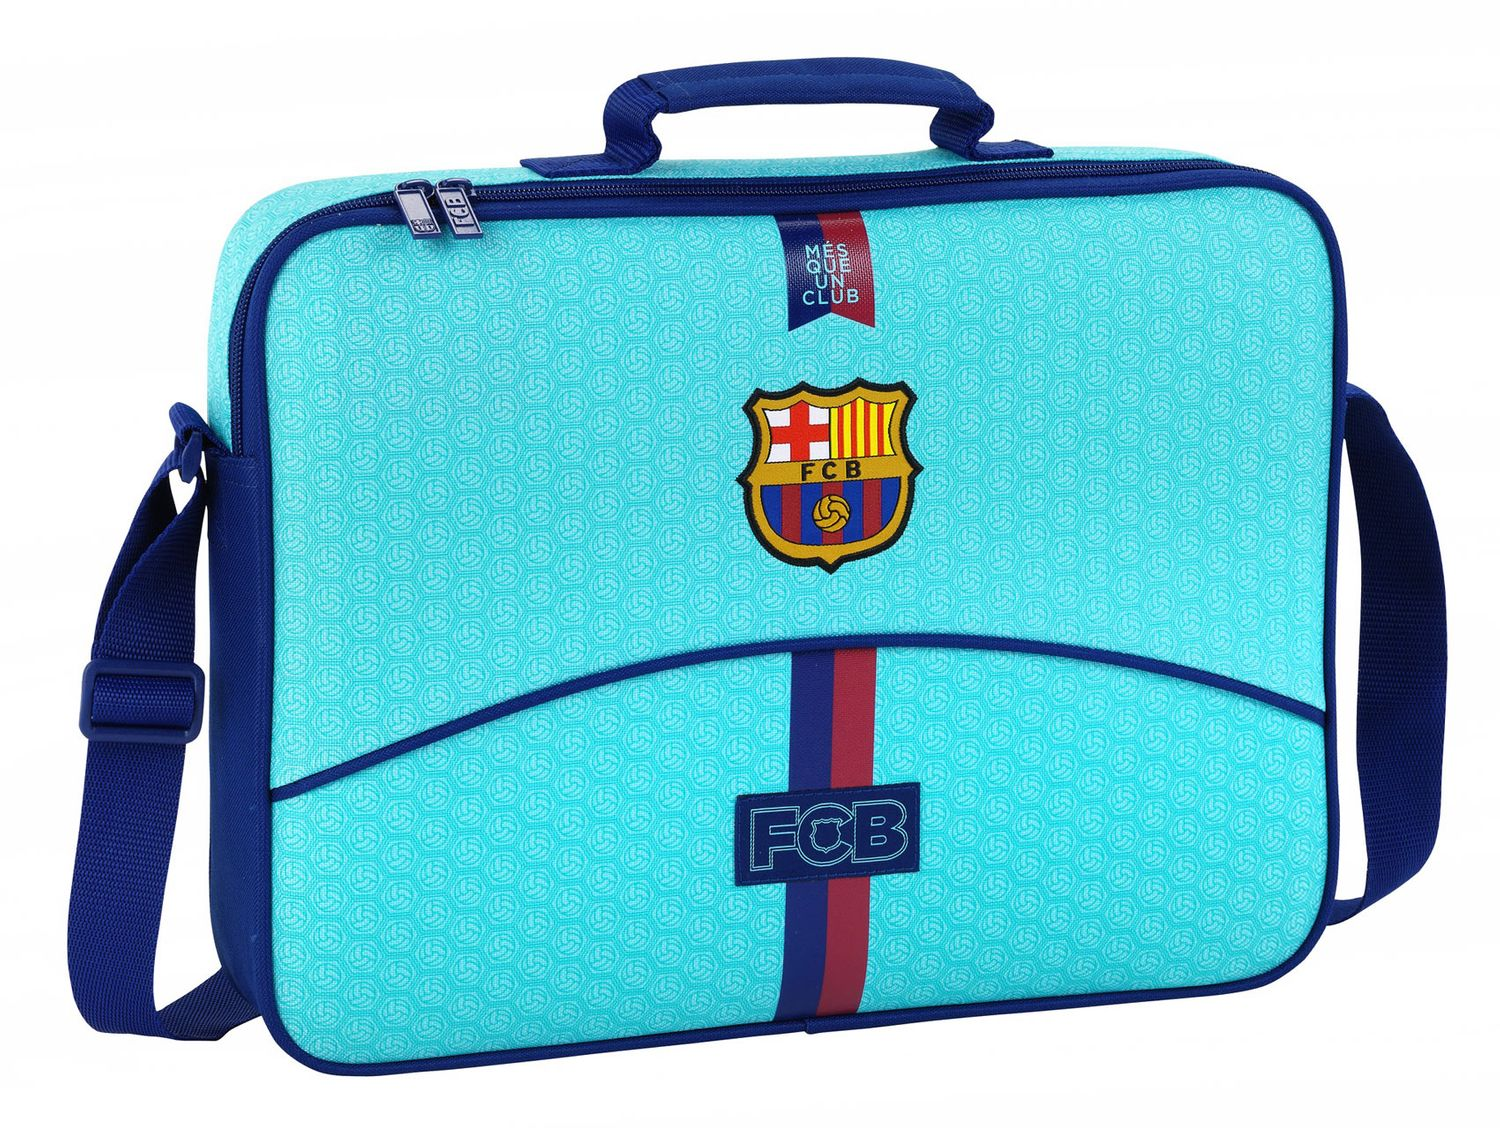 OFFICIAL F.C. Barcelona  2nd Kit School Briefcase Messenger Bag – image 1